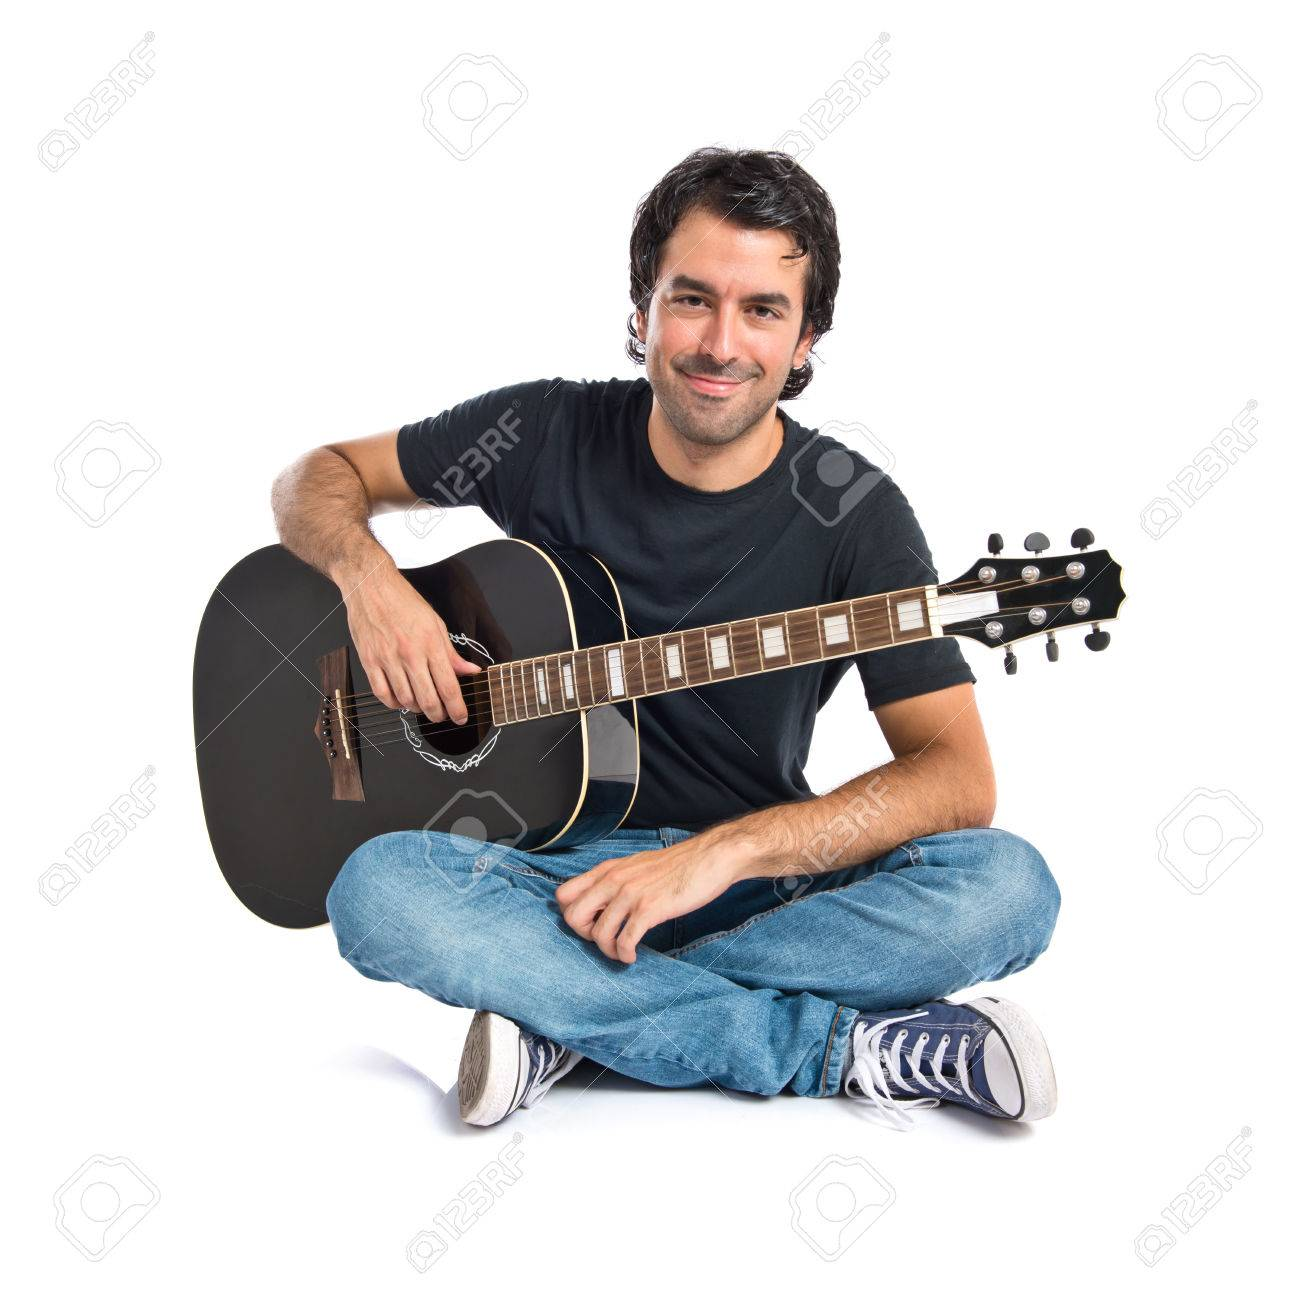 Handsome man with guitar over white background - 32492242